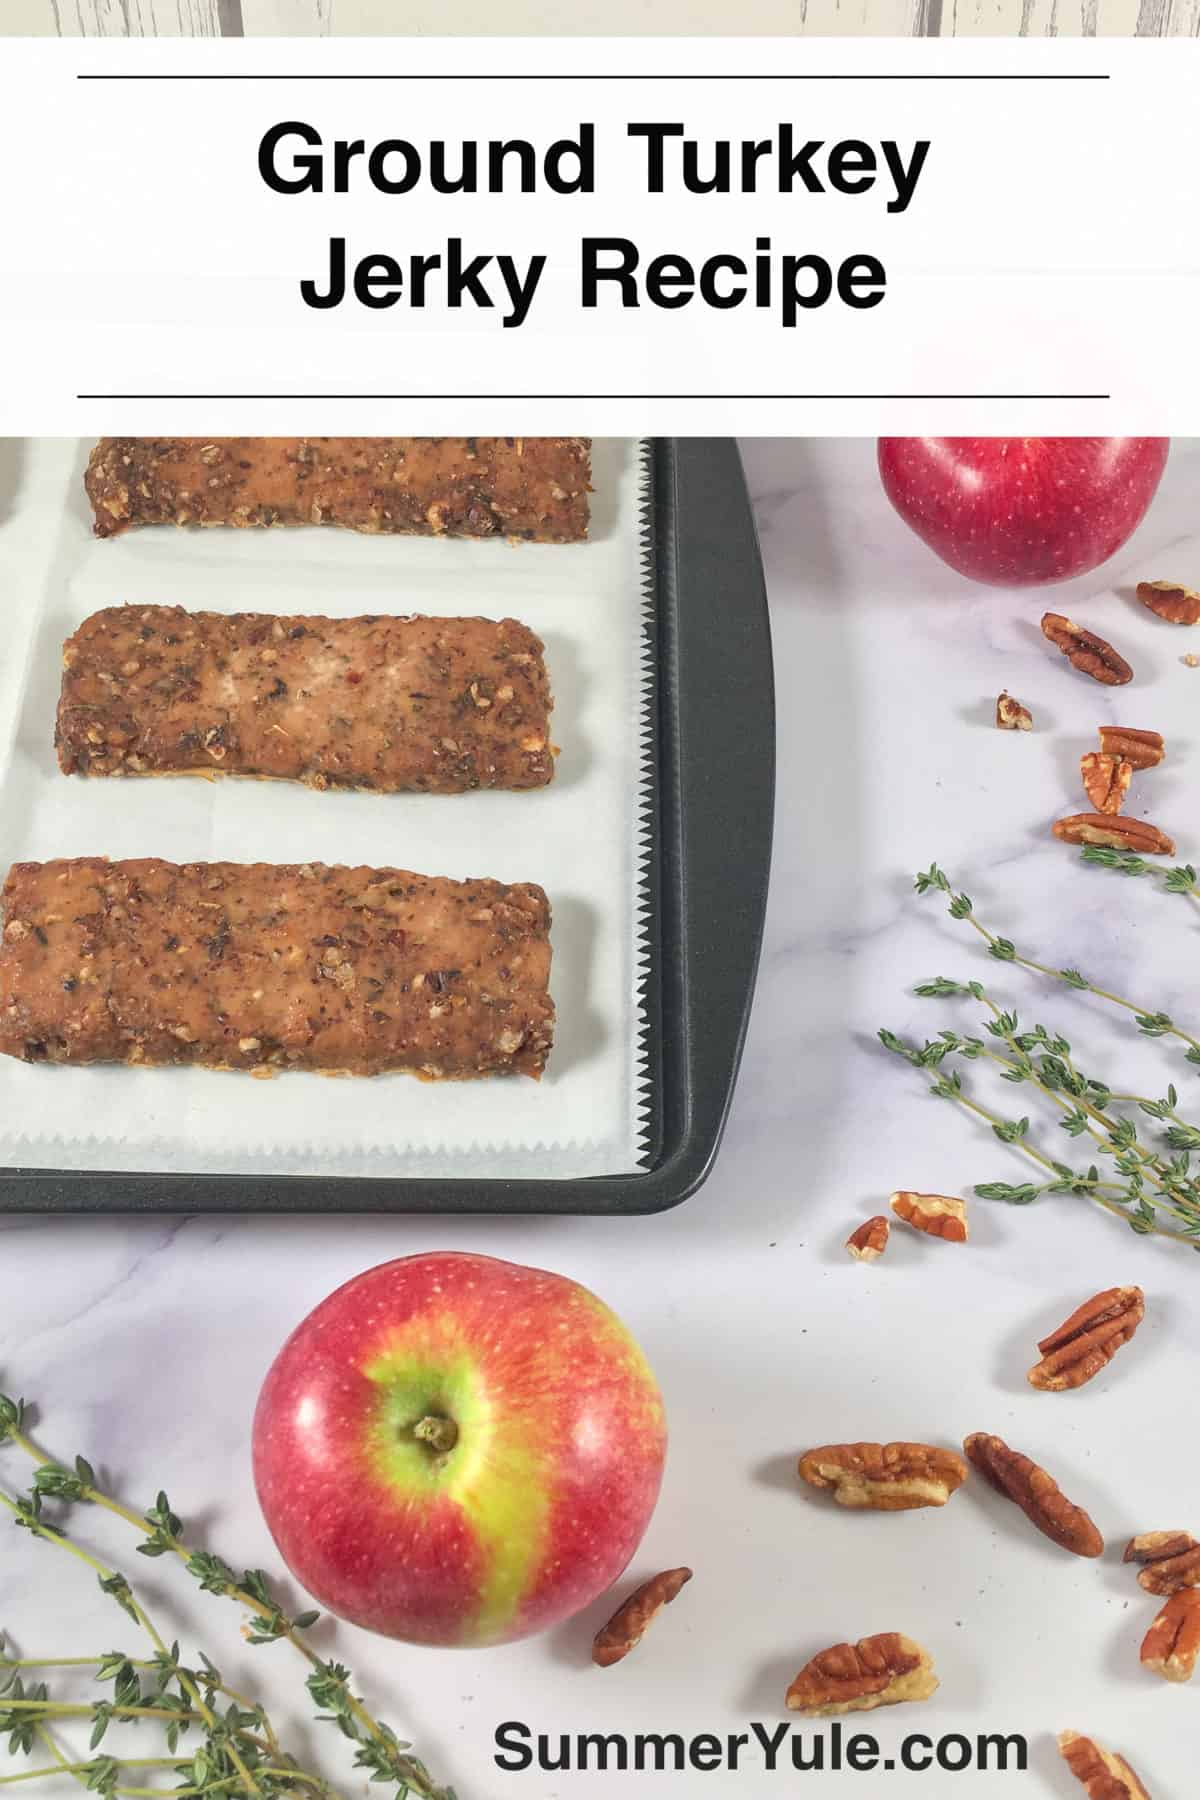 Photo of bars of the ground turkey jerky recipe on a baking sheet, surrounded by thyme, apples, and pecans (long image for Pinterest)